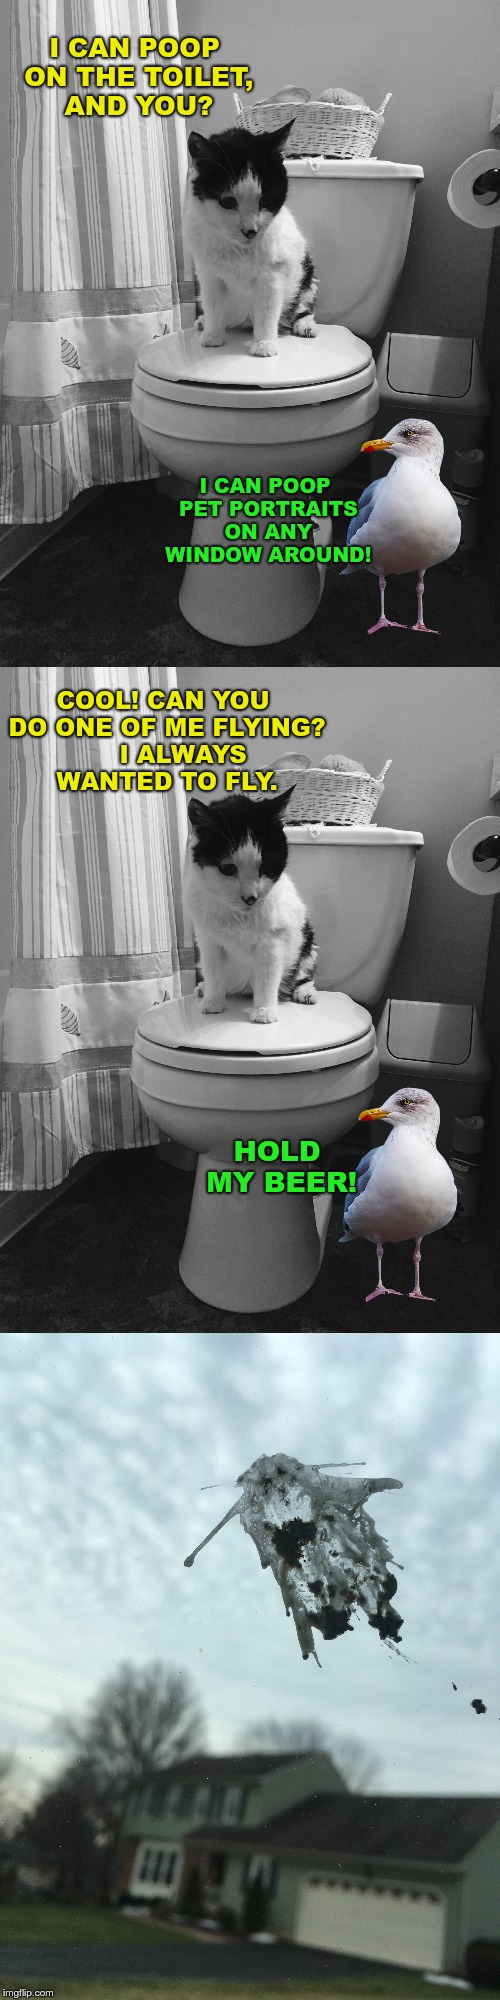 Cat Weekend! An original Poop-casso work of art :-) | I CAN POOP ON THE TOILET, AND YOU? COOL! CAN YOU DO ONE OF ME FLYING?     I ALWAYS WANTED TO FLY. I CAN POOP PET PORTRAITS ON ANY WINDOW ARO | image tagged in memes,cat weekend | made w/ Imgflip meme maker